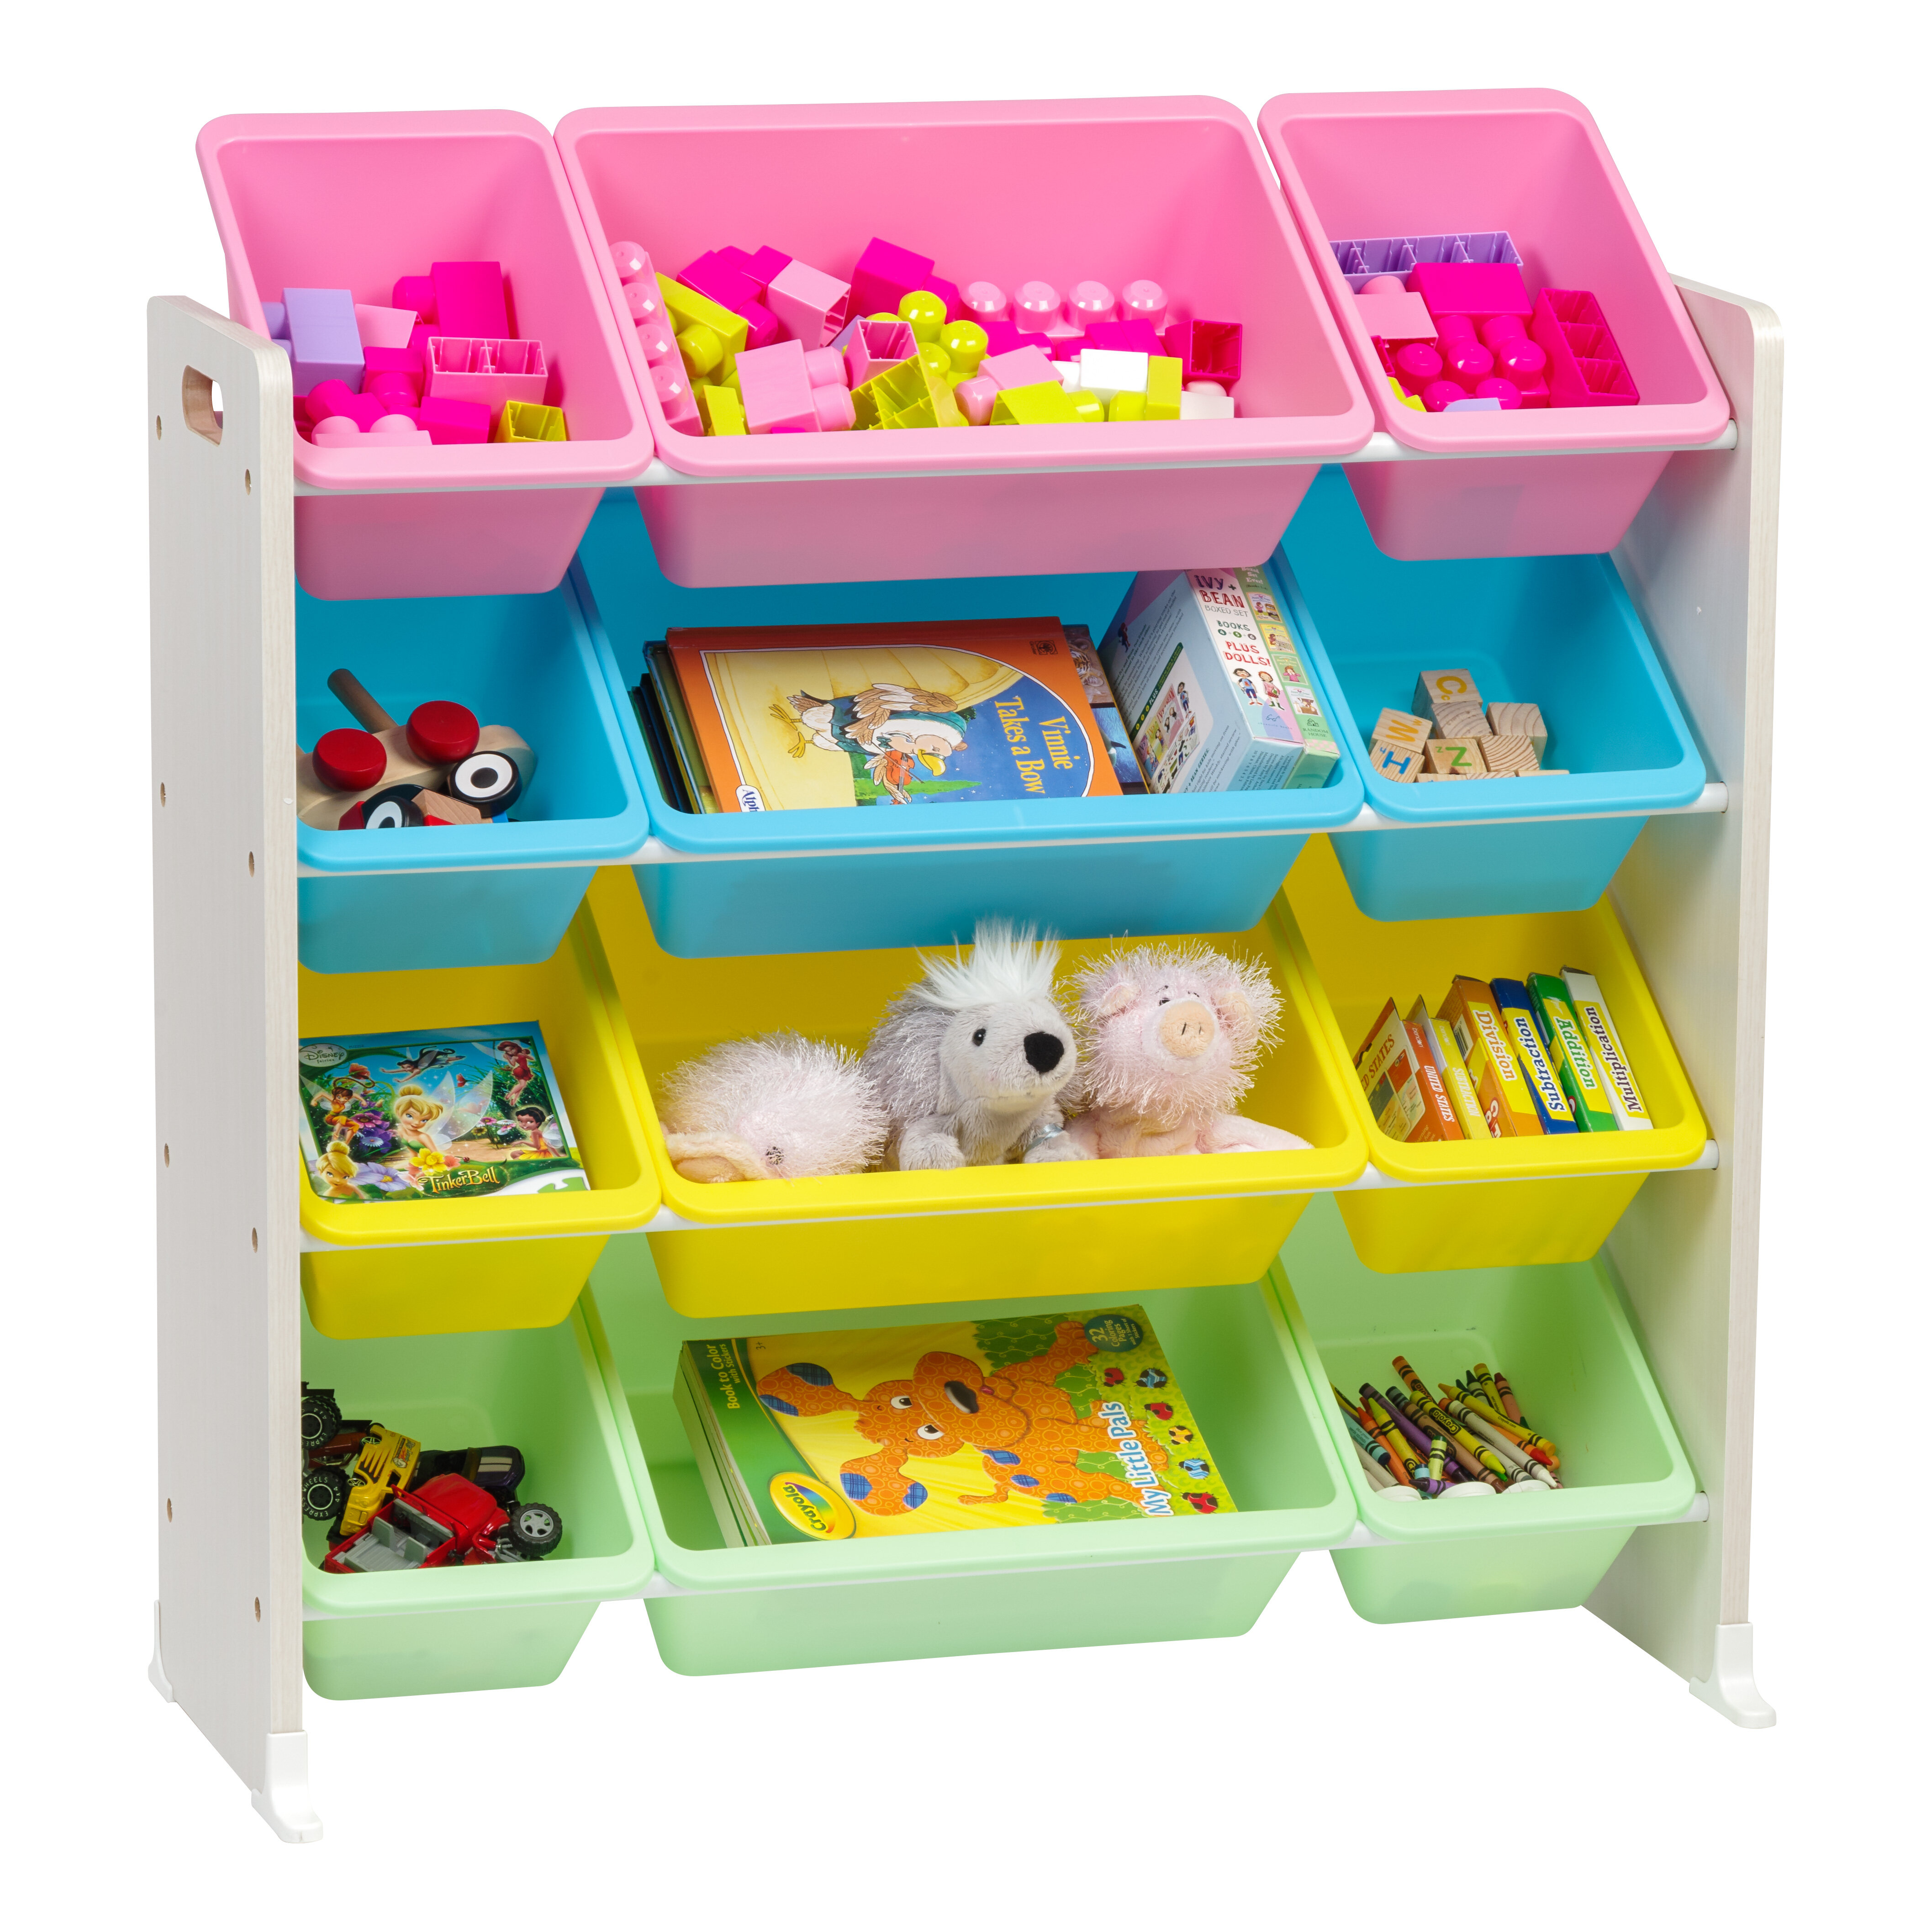 IRIS Personalized Toy Organizer & Reviews | Wayfair